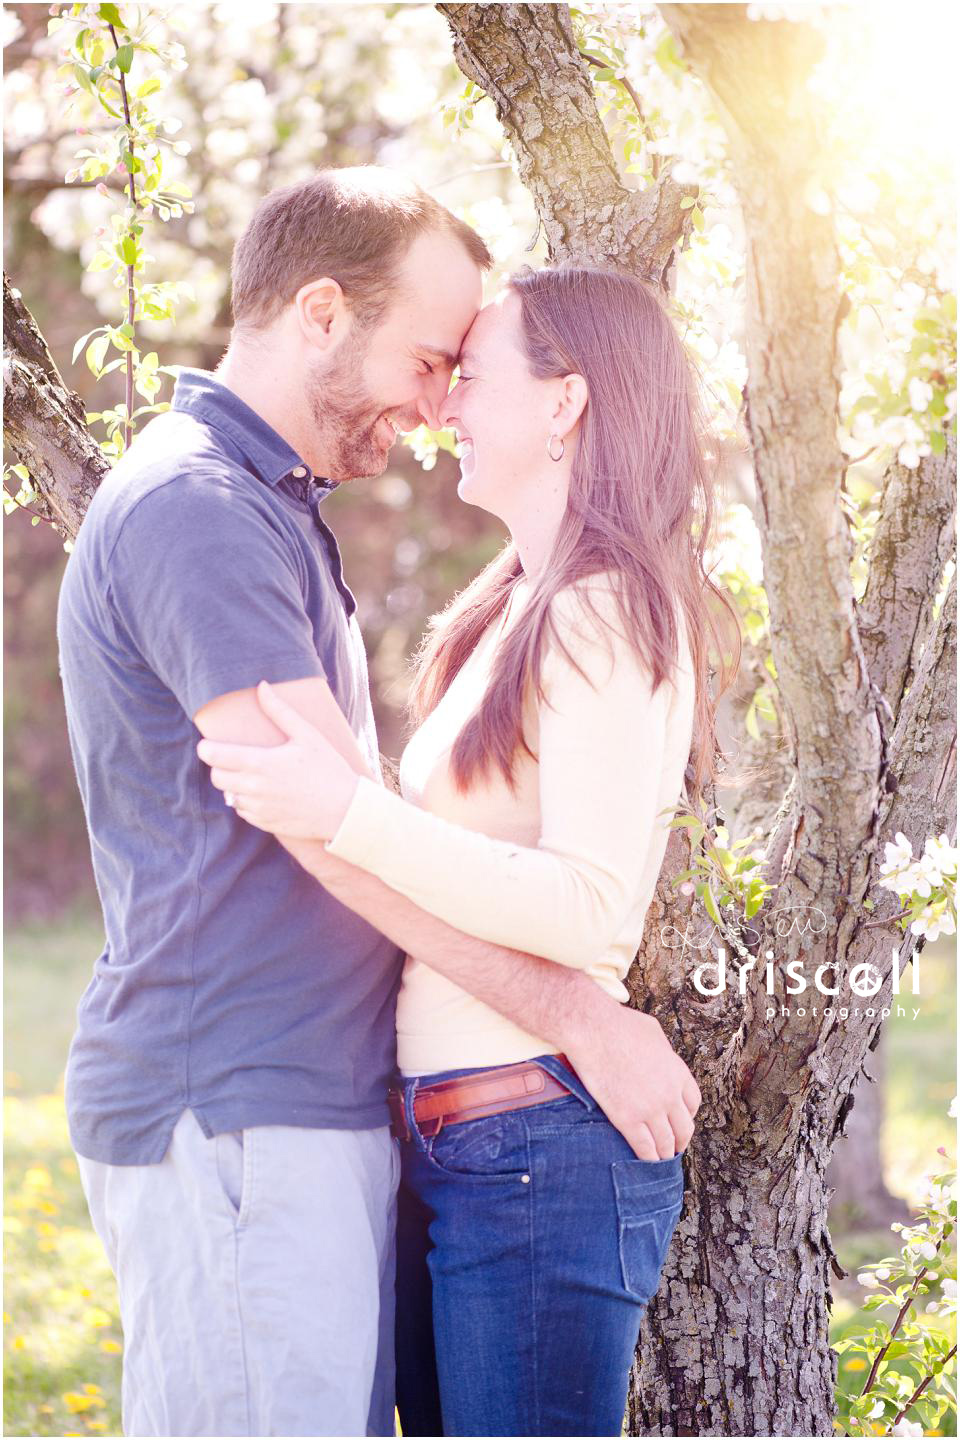 nj-engagement-photos-kristen-driscoll-photography-20130428-7813w